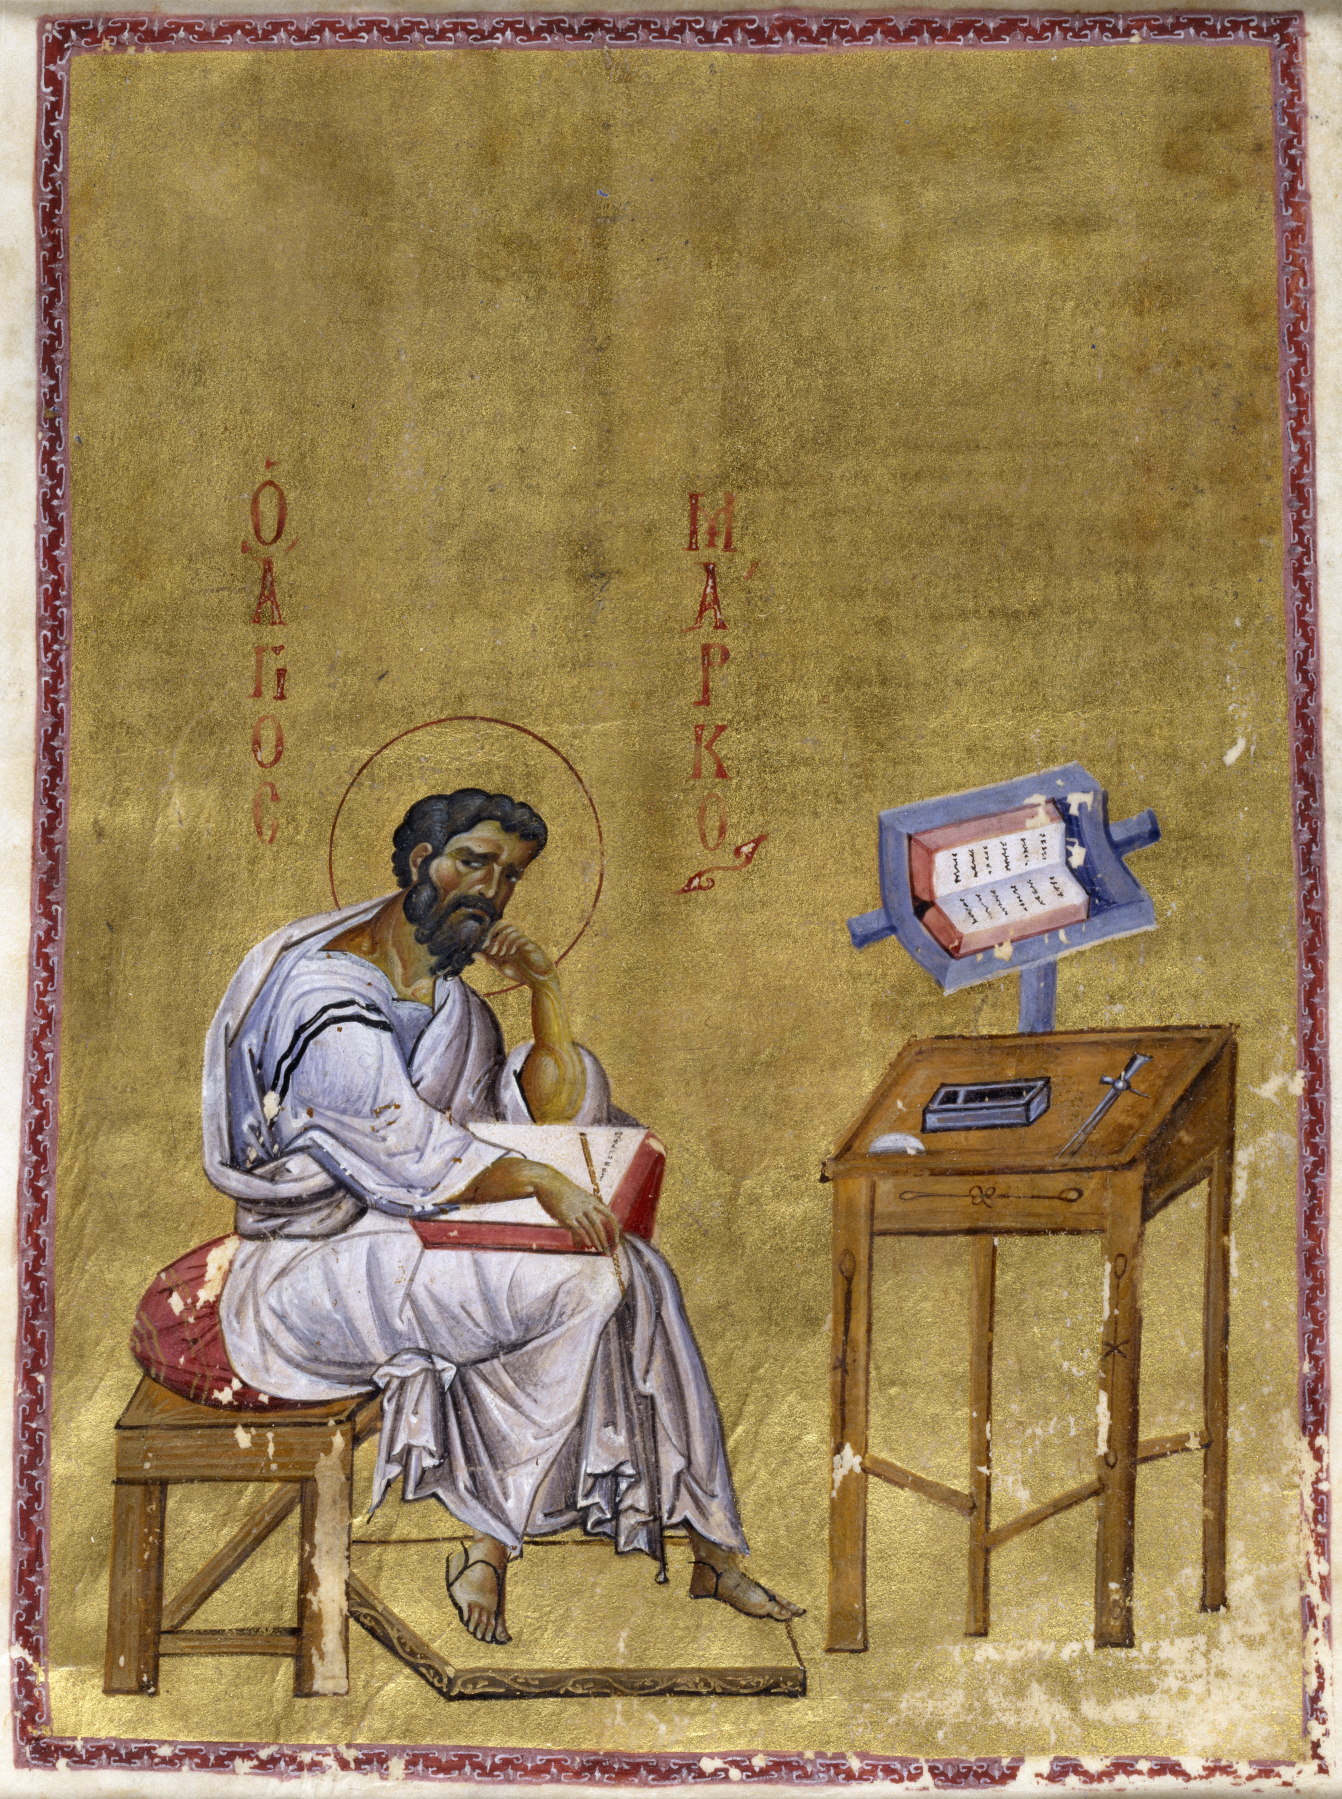 Anonymous, the Evangelist Mark Seated in his Study (c. 11th c. CE), image from  the Walters Art Museum  (No. W.530.A), distributed under a  CC  license.